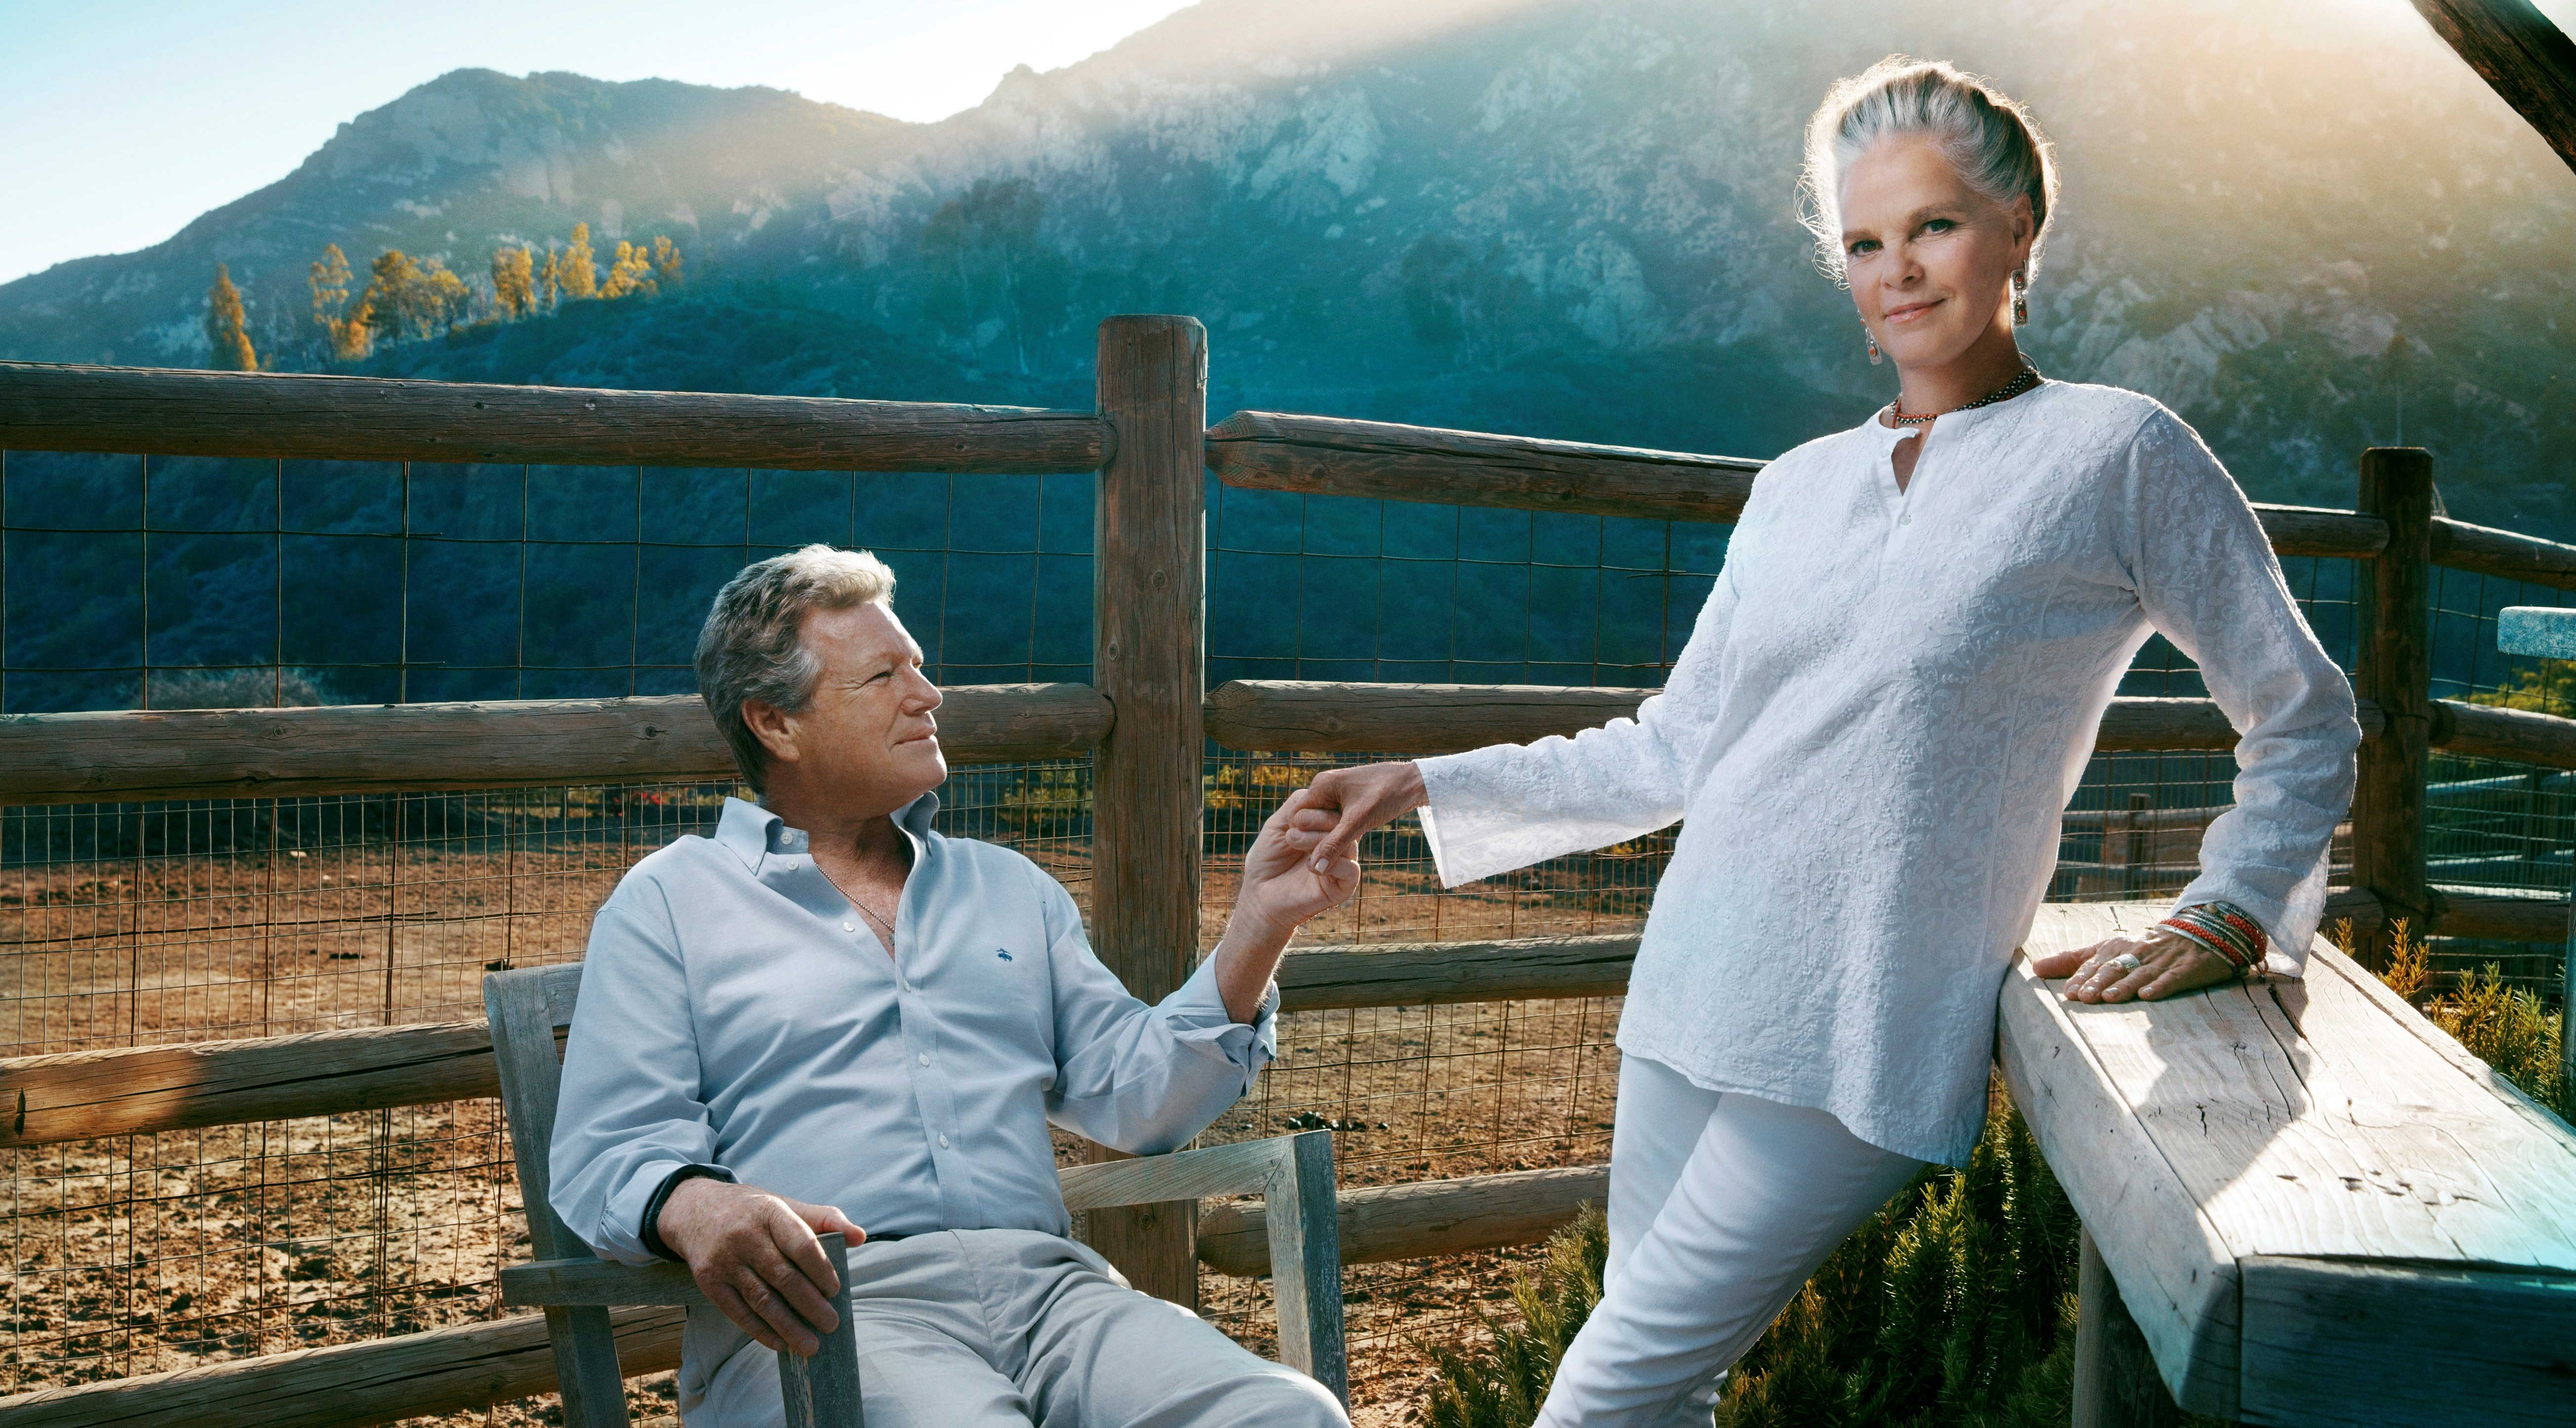 Hollywood legends Ali MacGraw and Ryan O'Neal to star in Love Letters